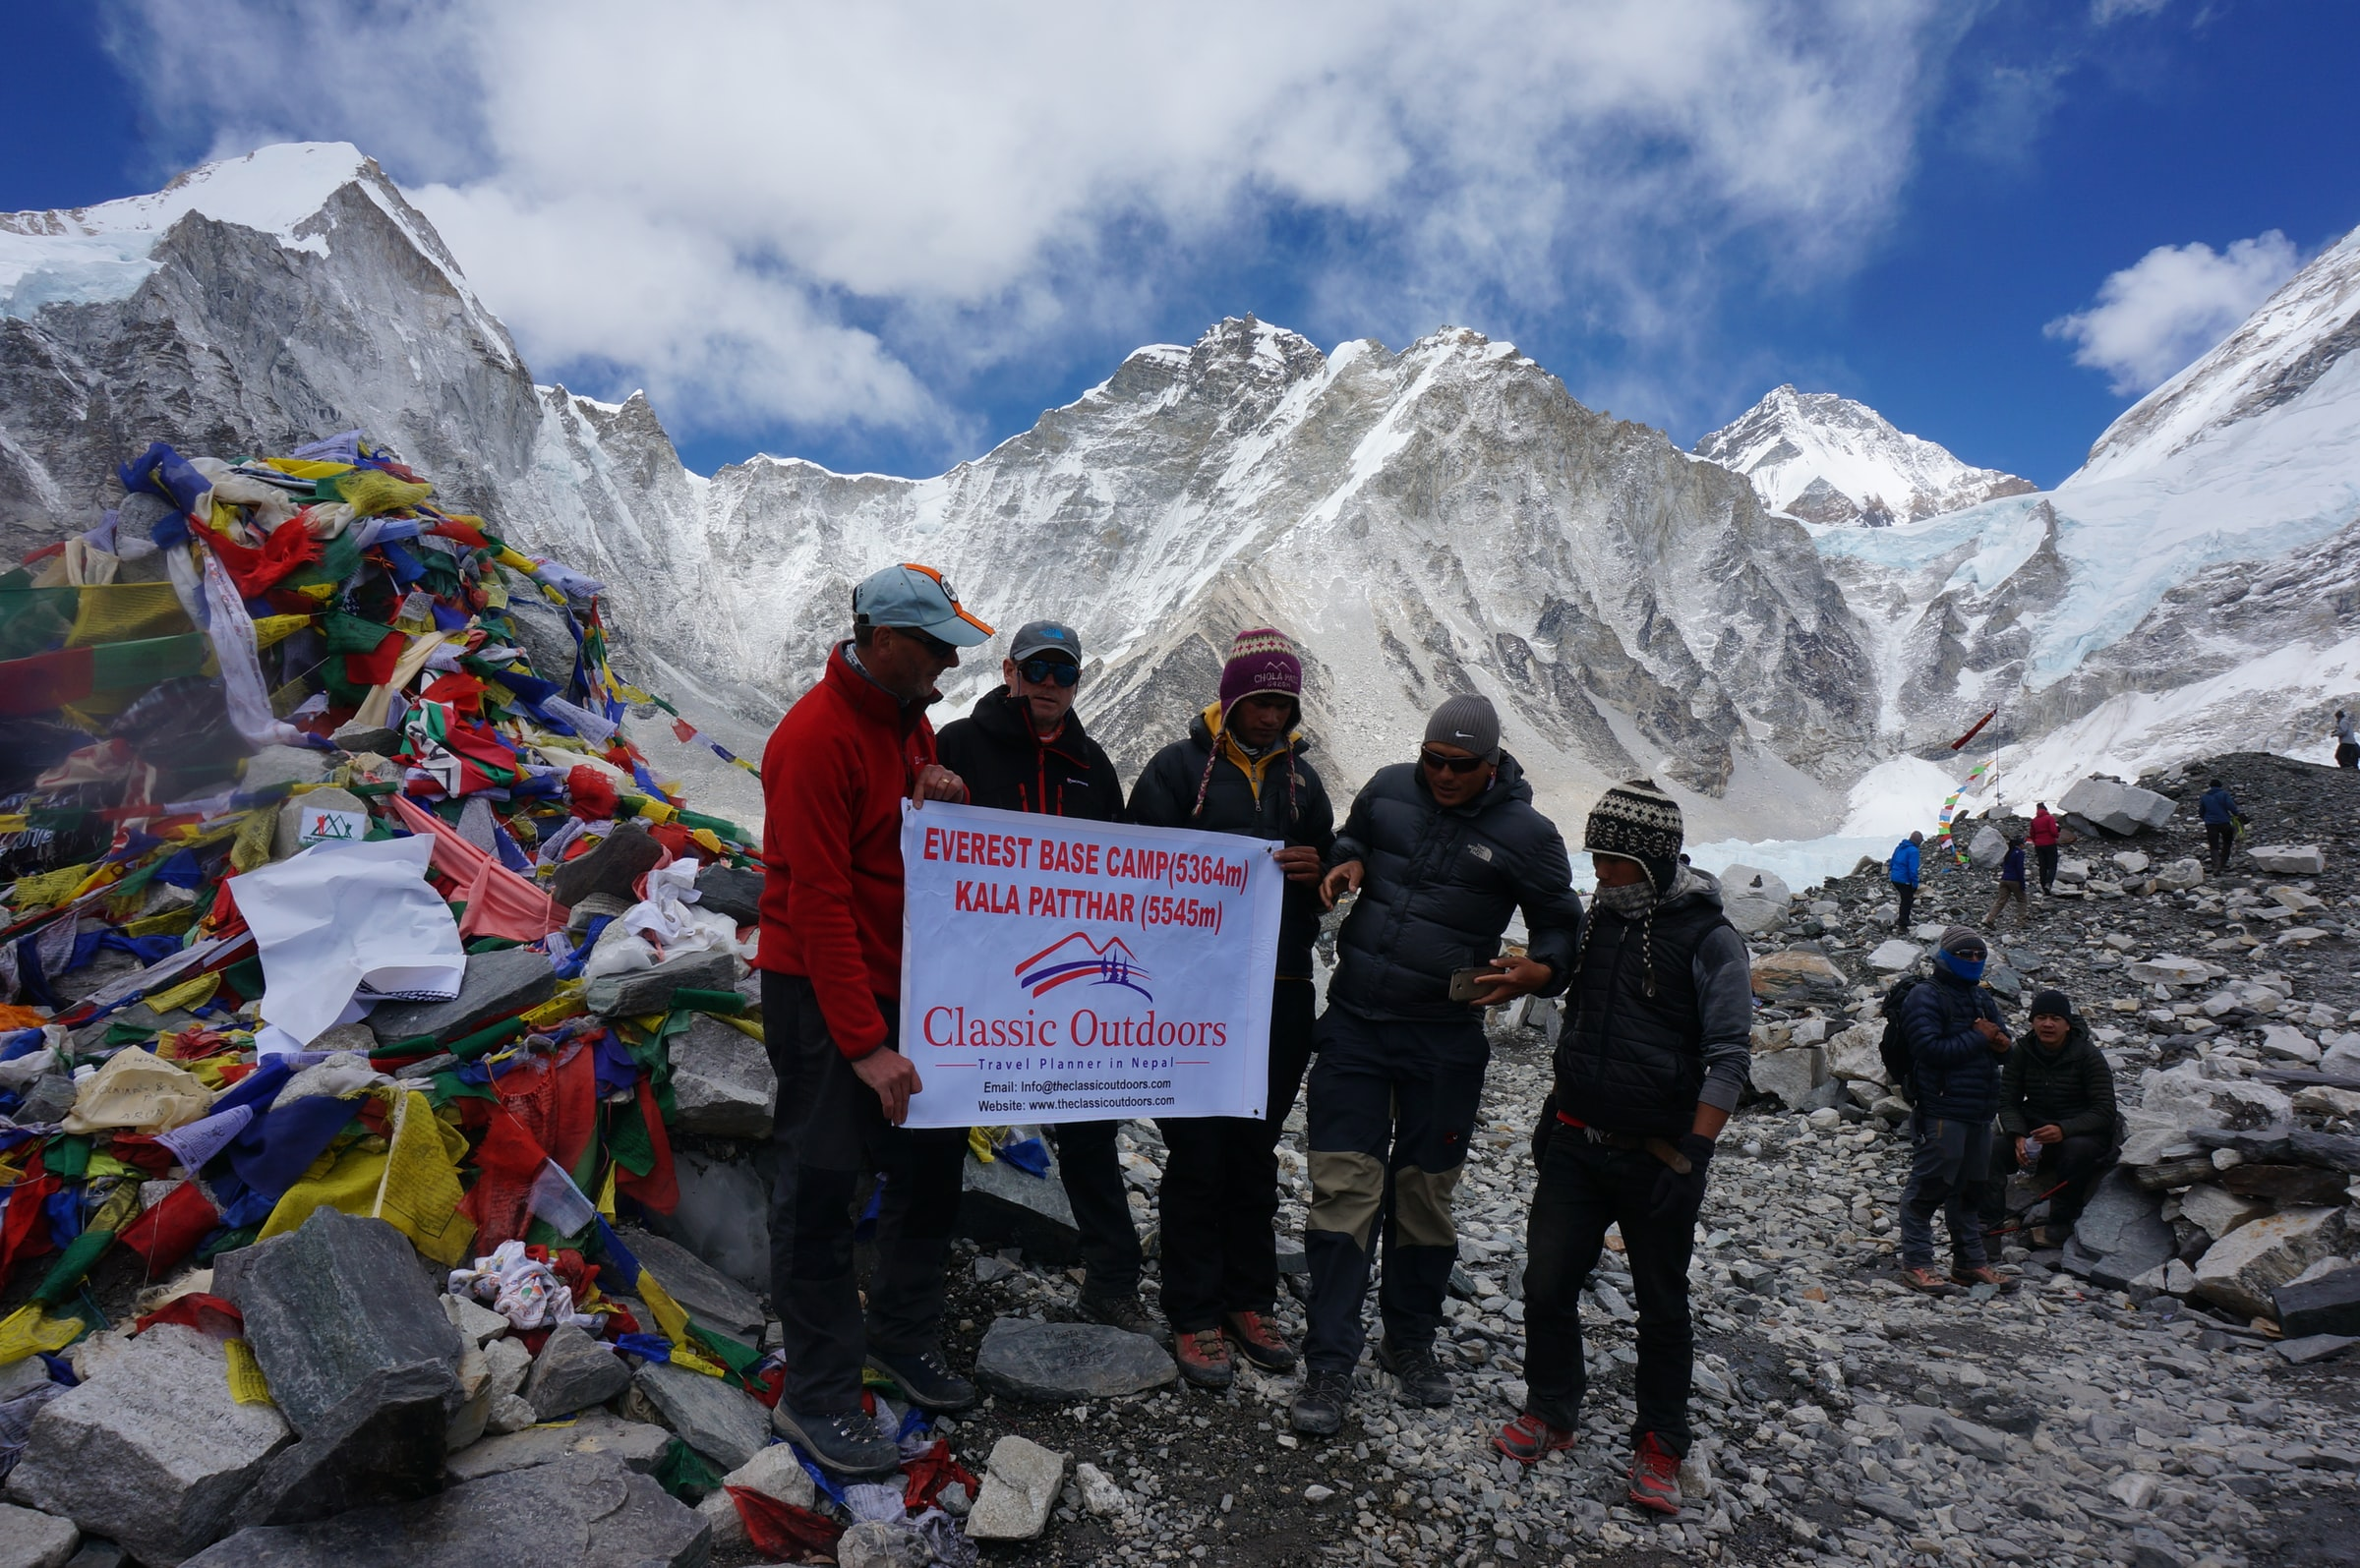 Everest base camp - dak van de wereld